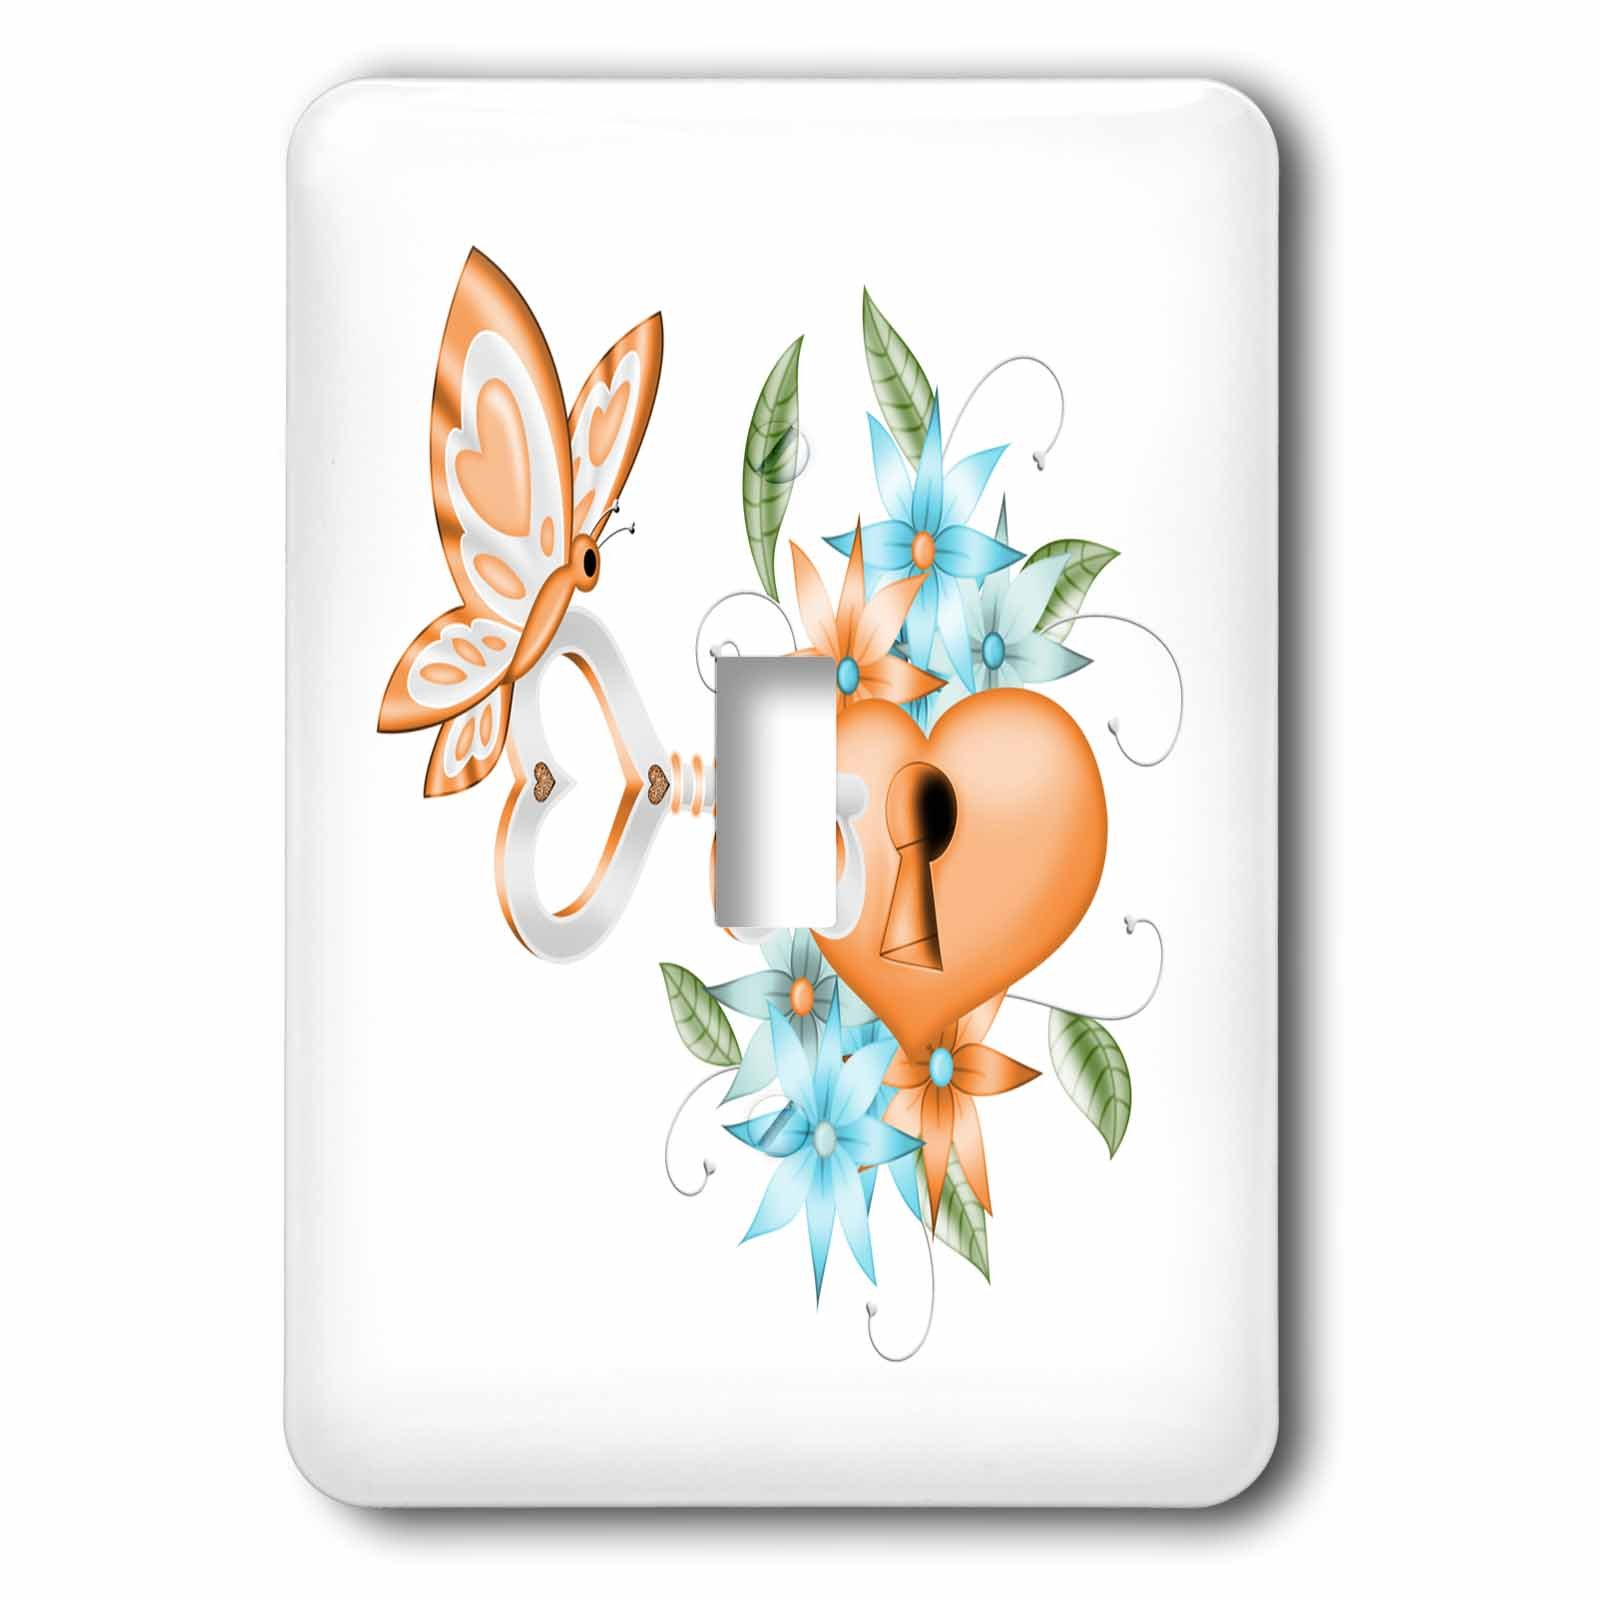 3dRose Anne Marie Baugh - Illustrations - Pretty Orange Butterfly With A Floral Lock and Key Illustration - Light Switch Covers - single toggle switch (lsp_264915_1)